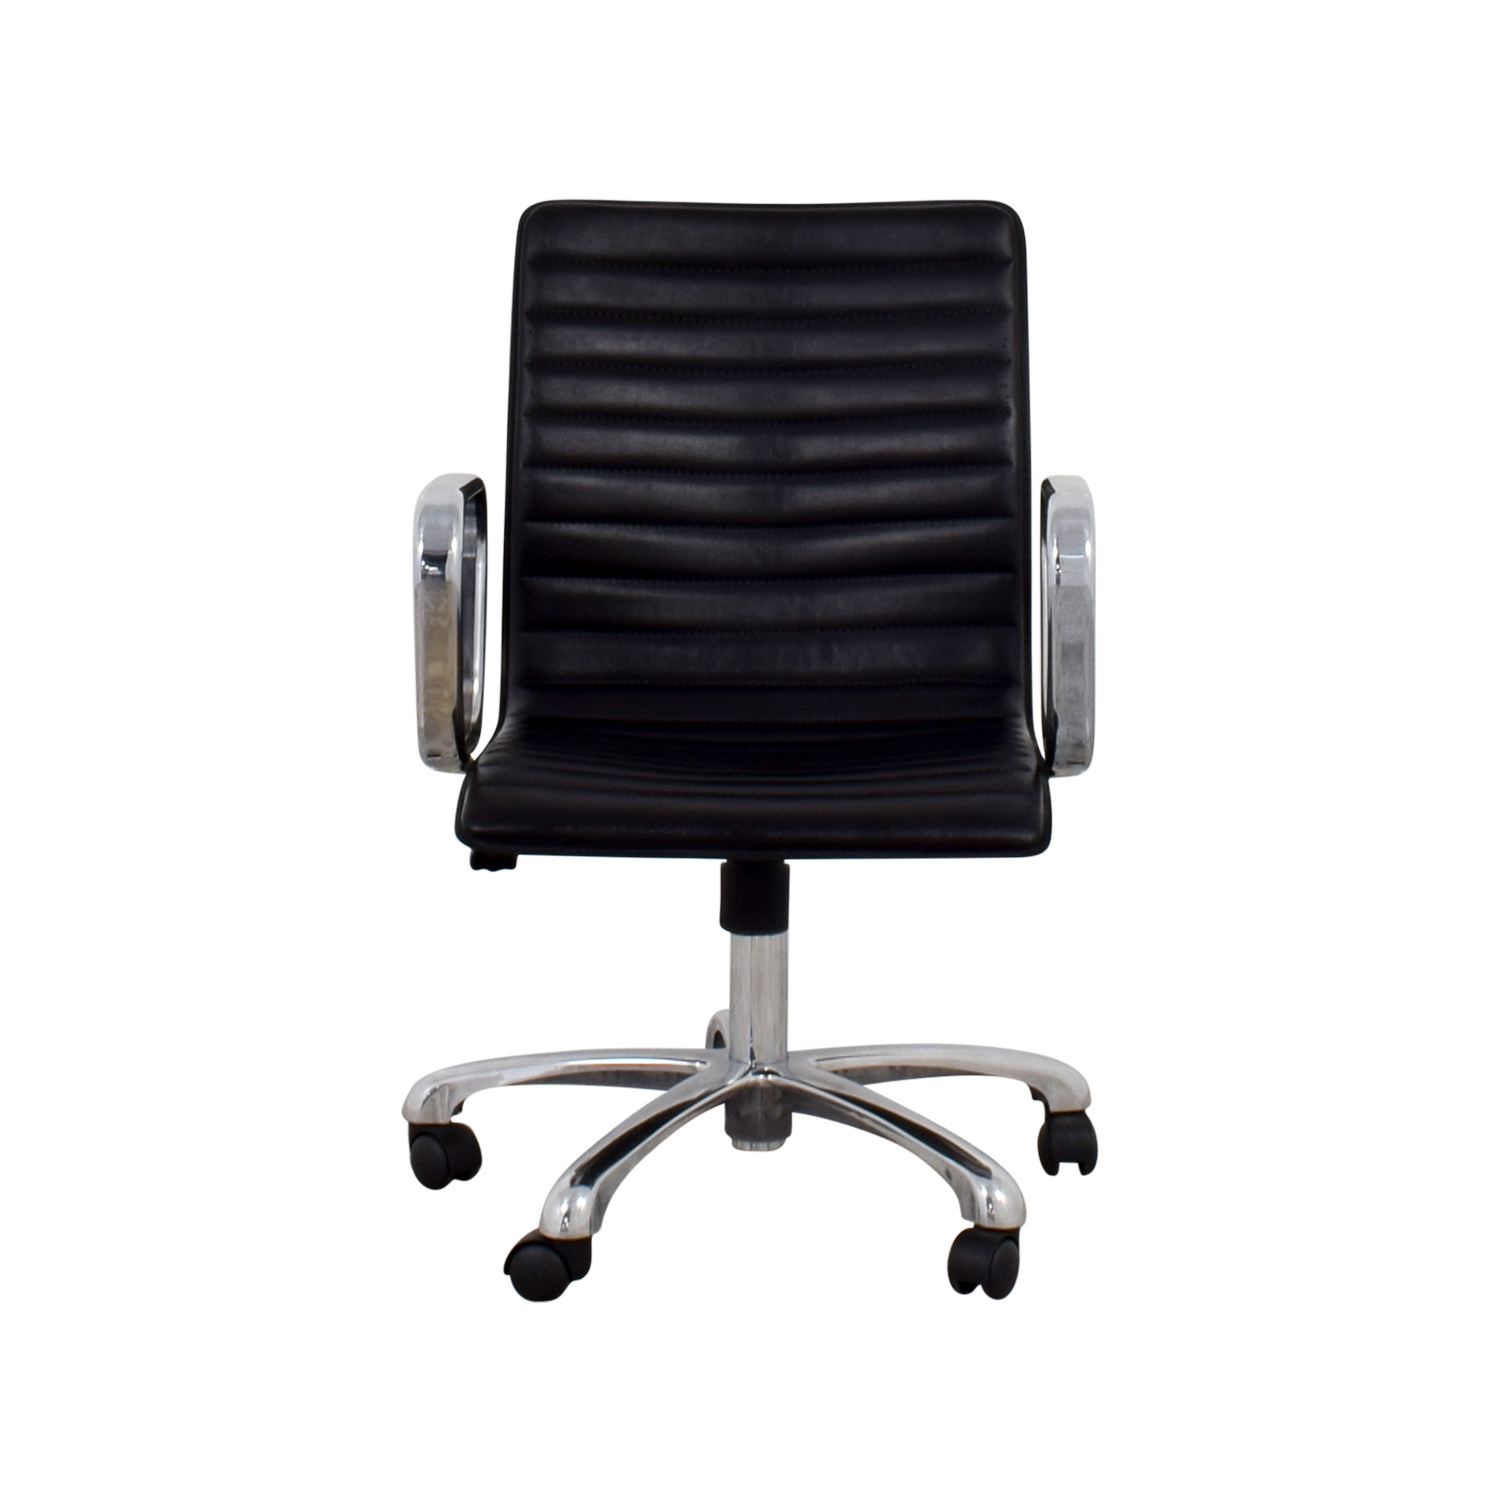 shop Crate & Barrel Crate & Barrel Ripple Leather Office Chair online